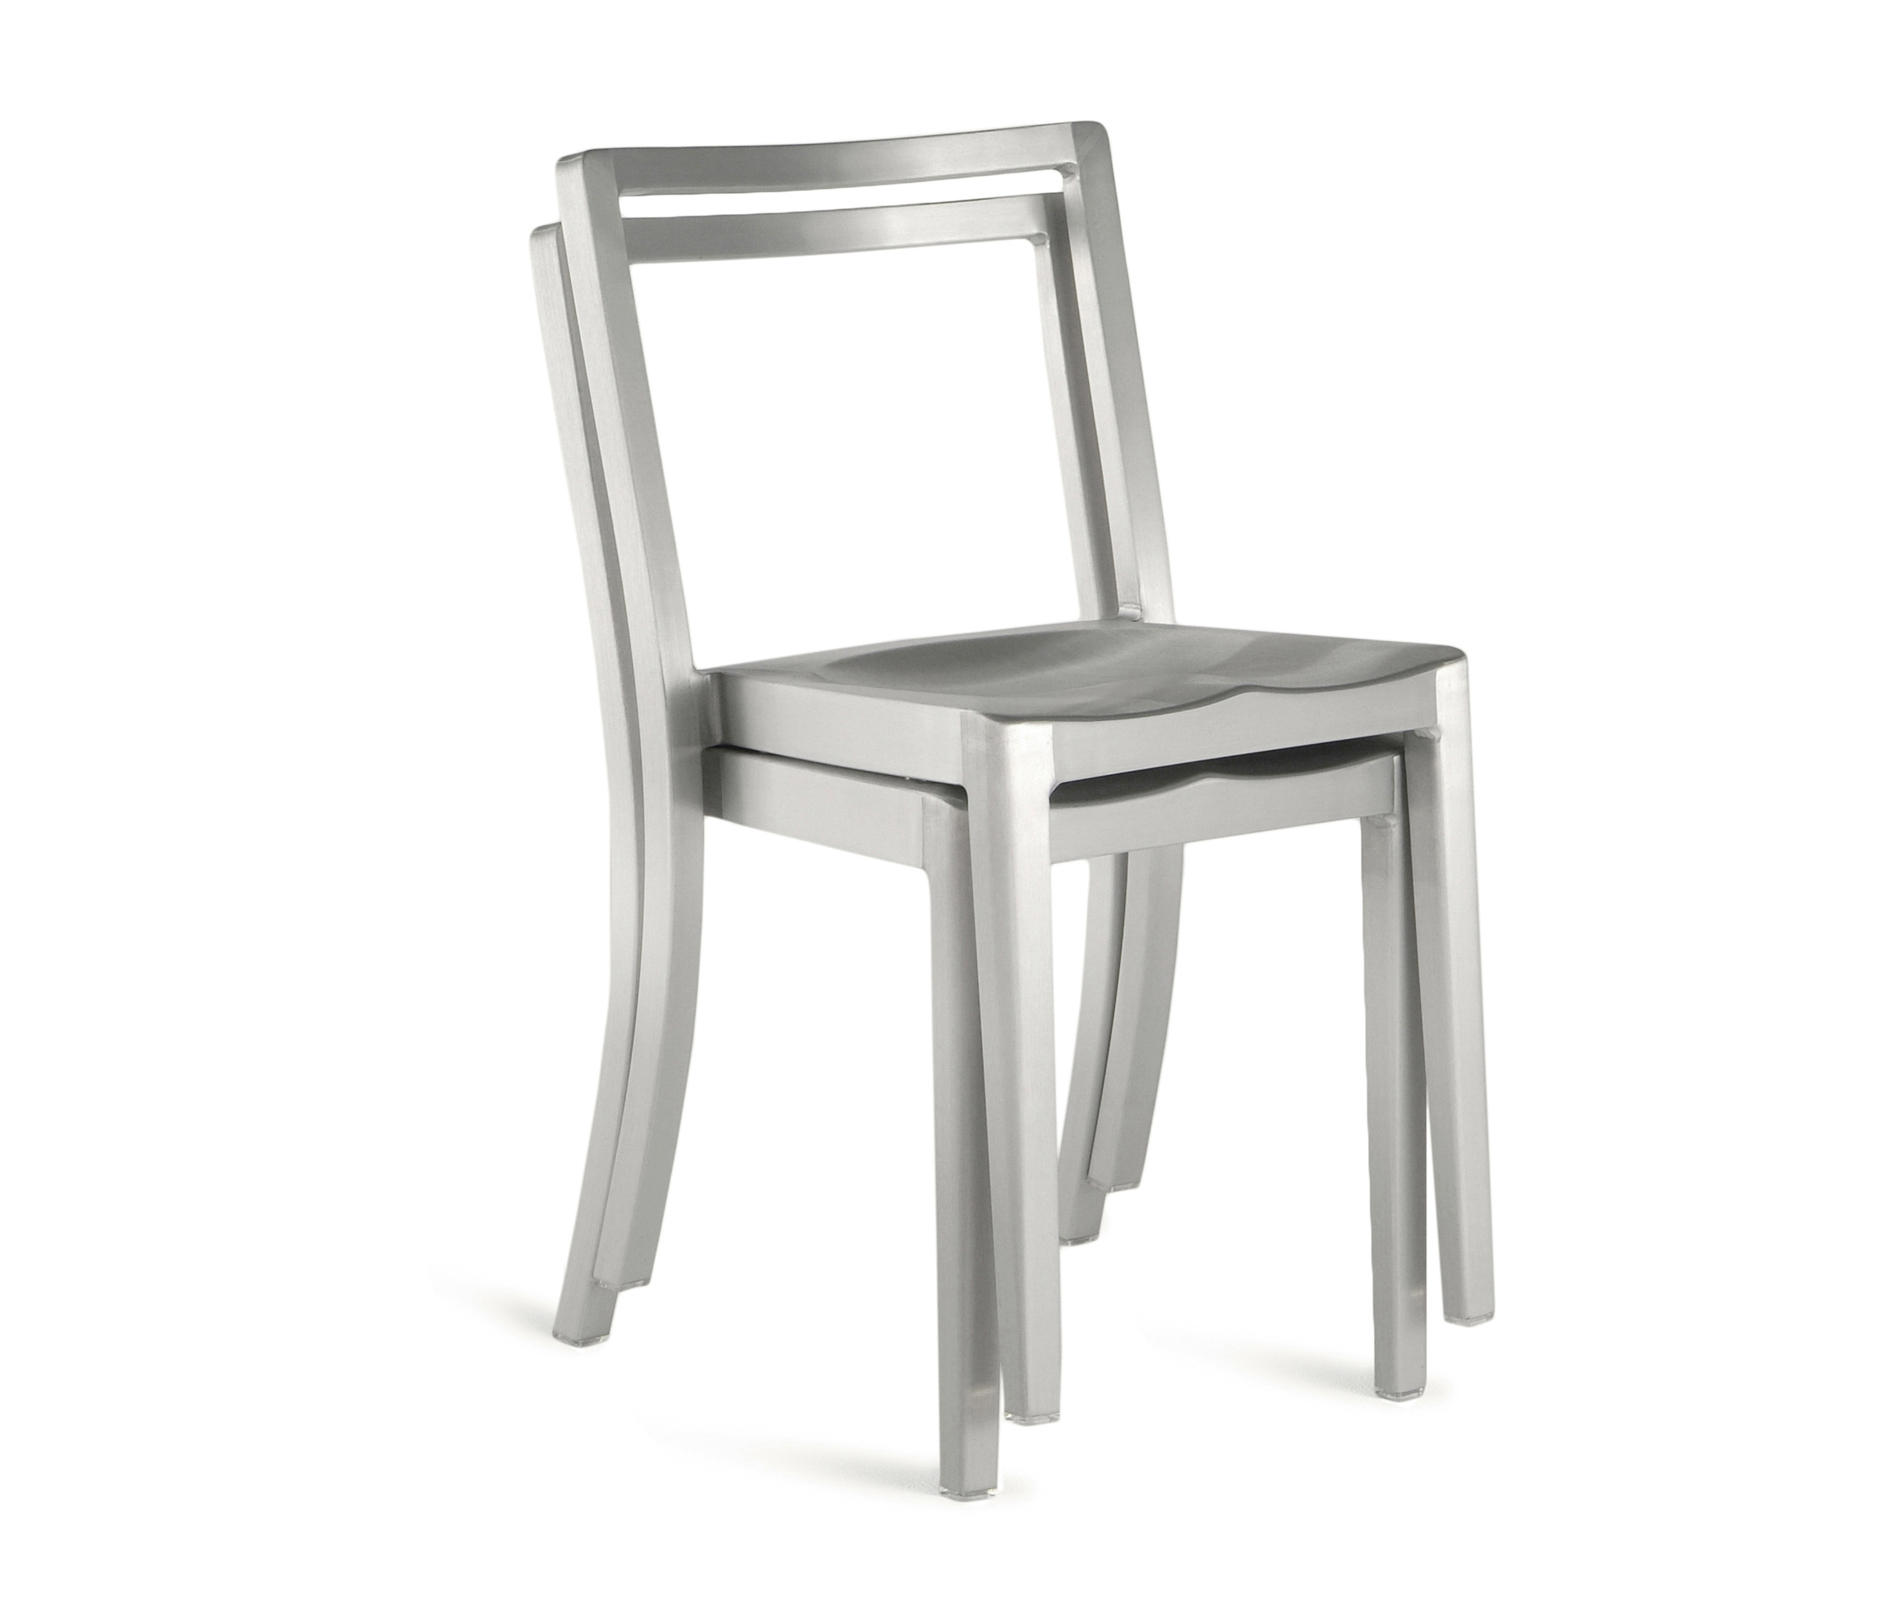 ICON CHAIR Restaurant chairs from emeco